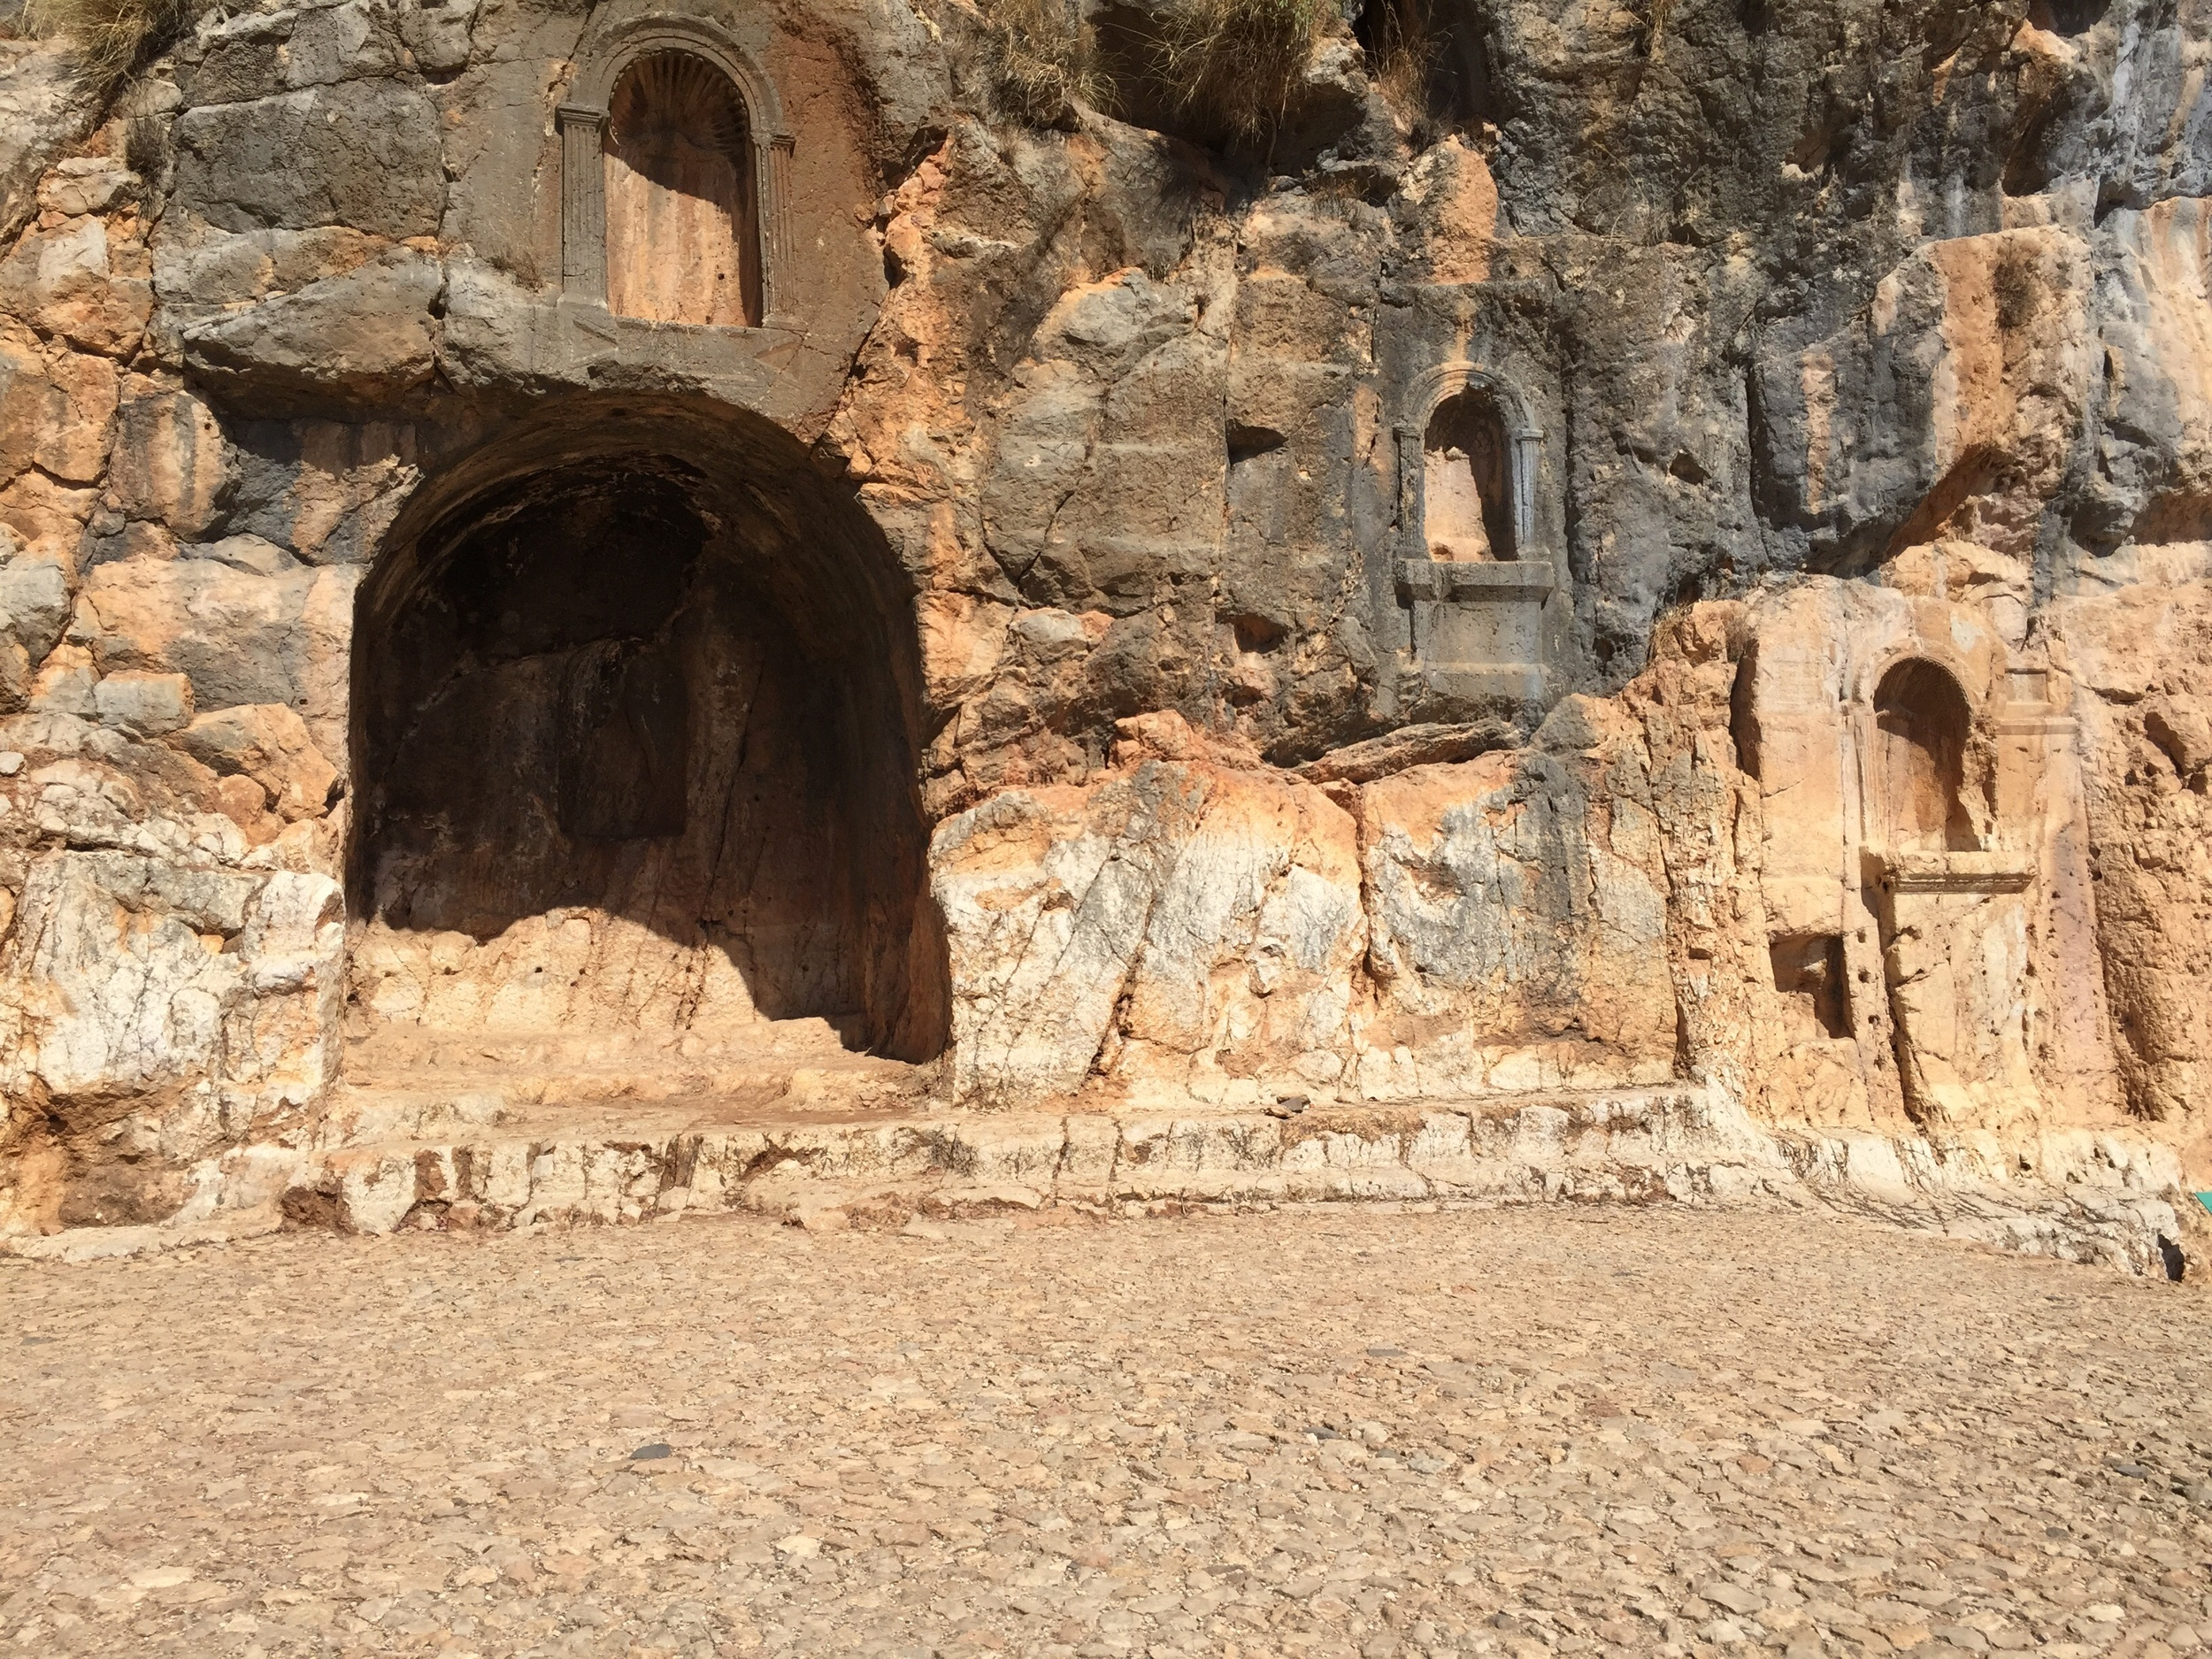 Some niches in the cliff wall where statues used to rest. This cliff wall was the rear of the temple.